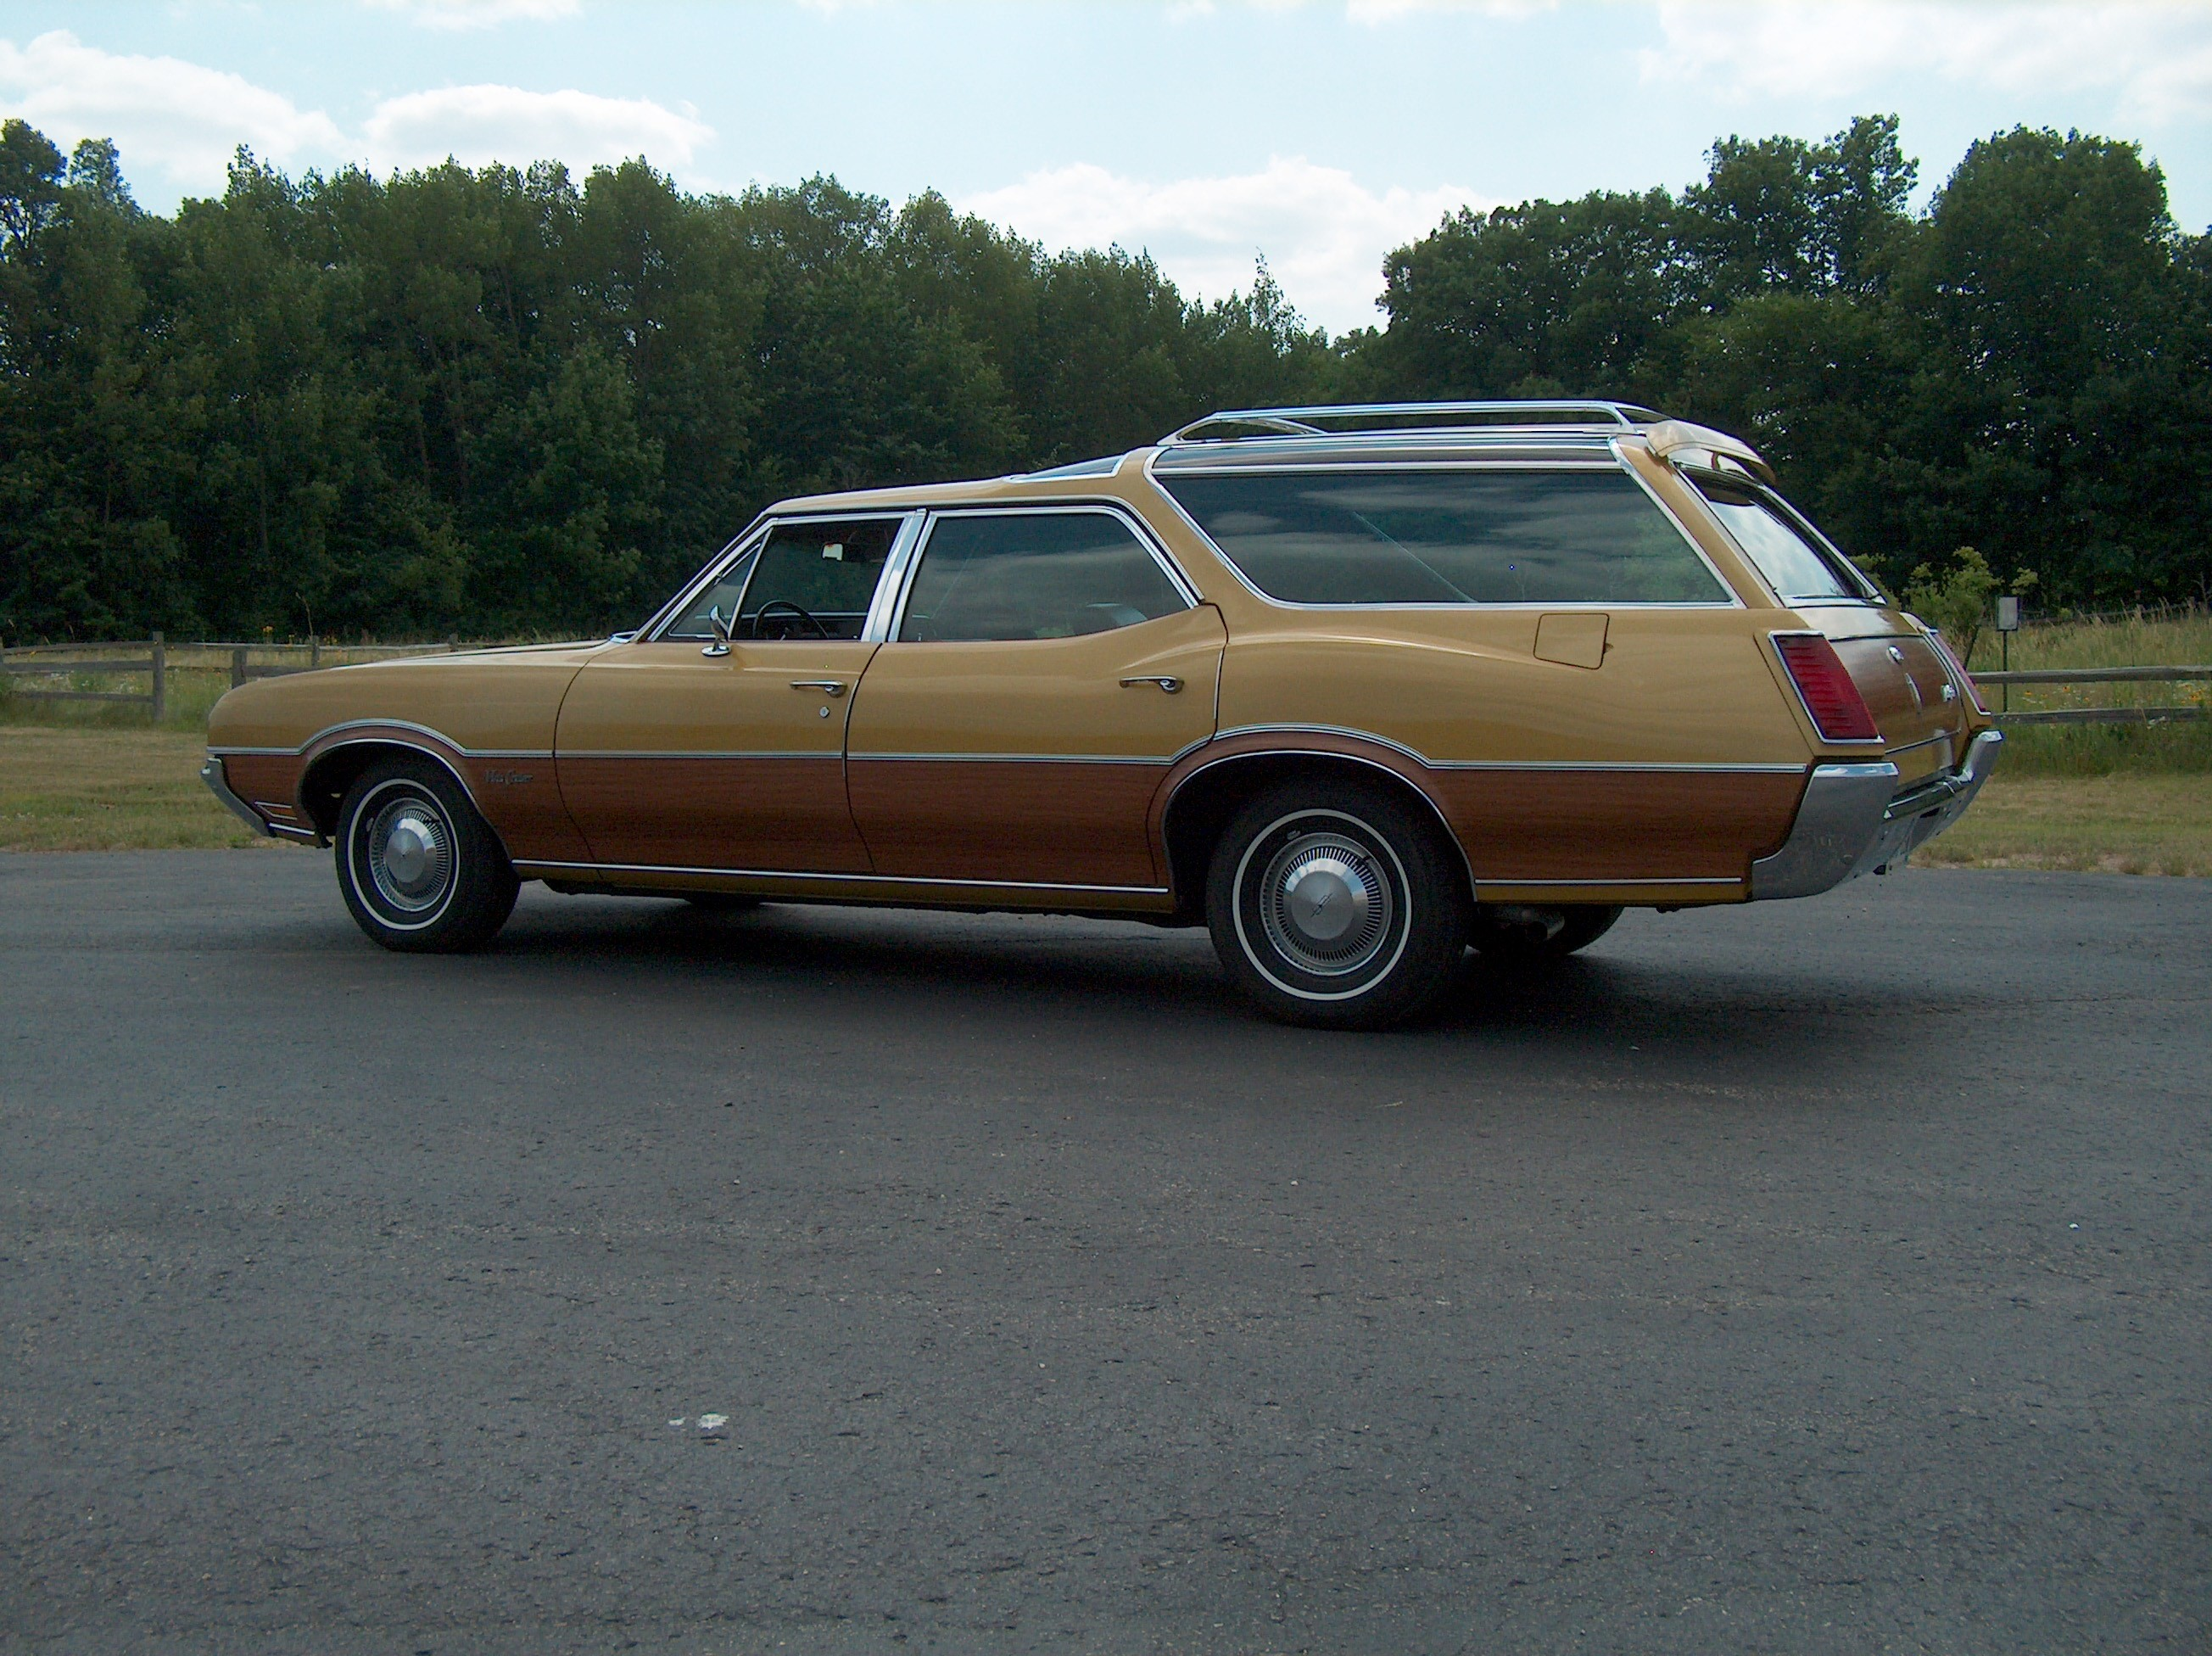 Craigslist Seattle Cars By Owner >> Craigslist 1970 Wagon | Autos Post